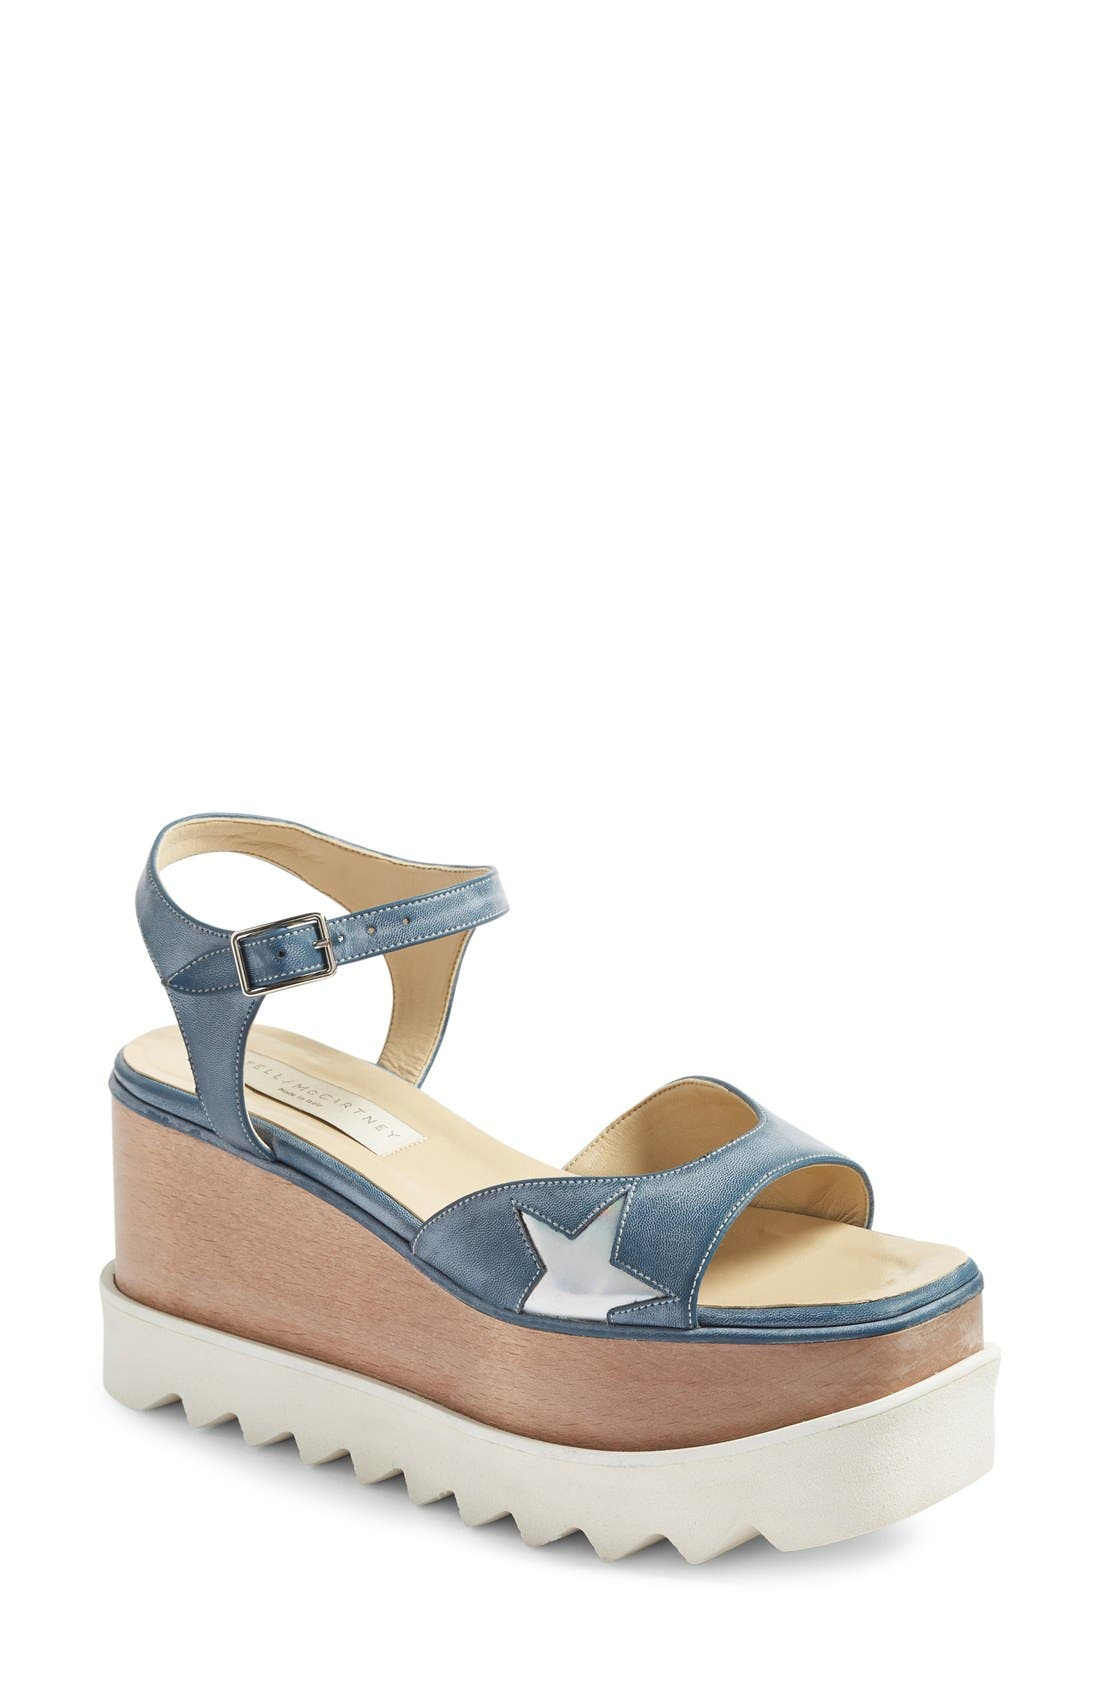 STELLA MCCARTNEY Star Platform Wedge Sandal